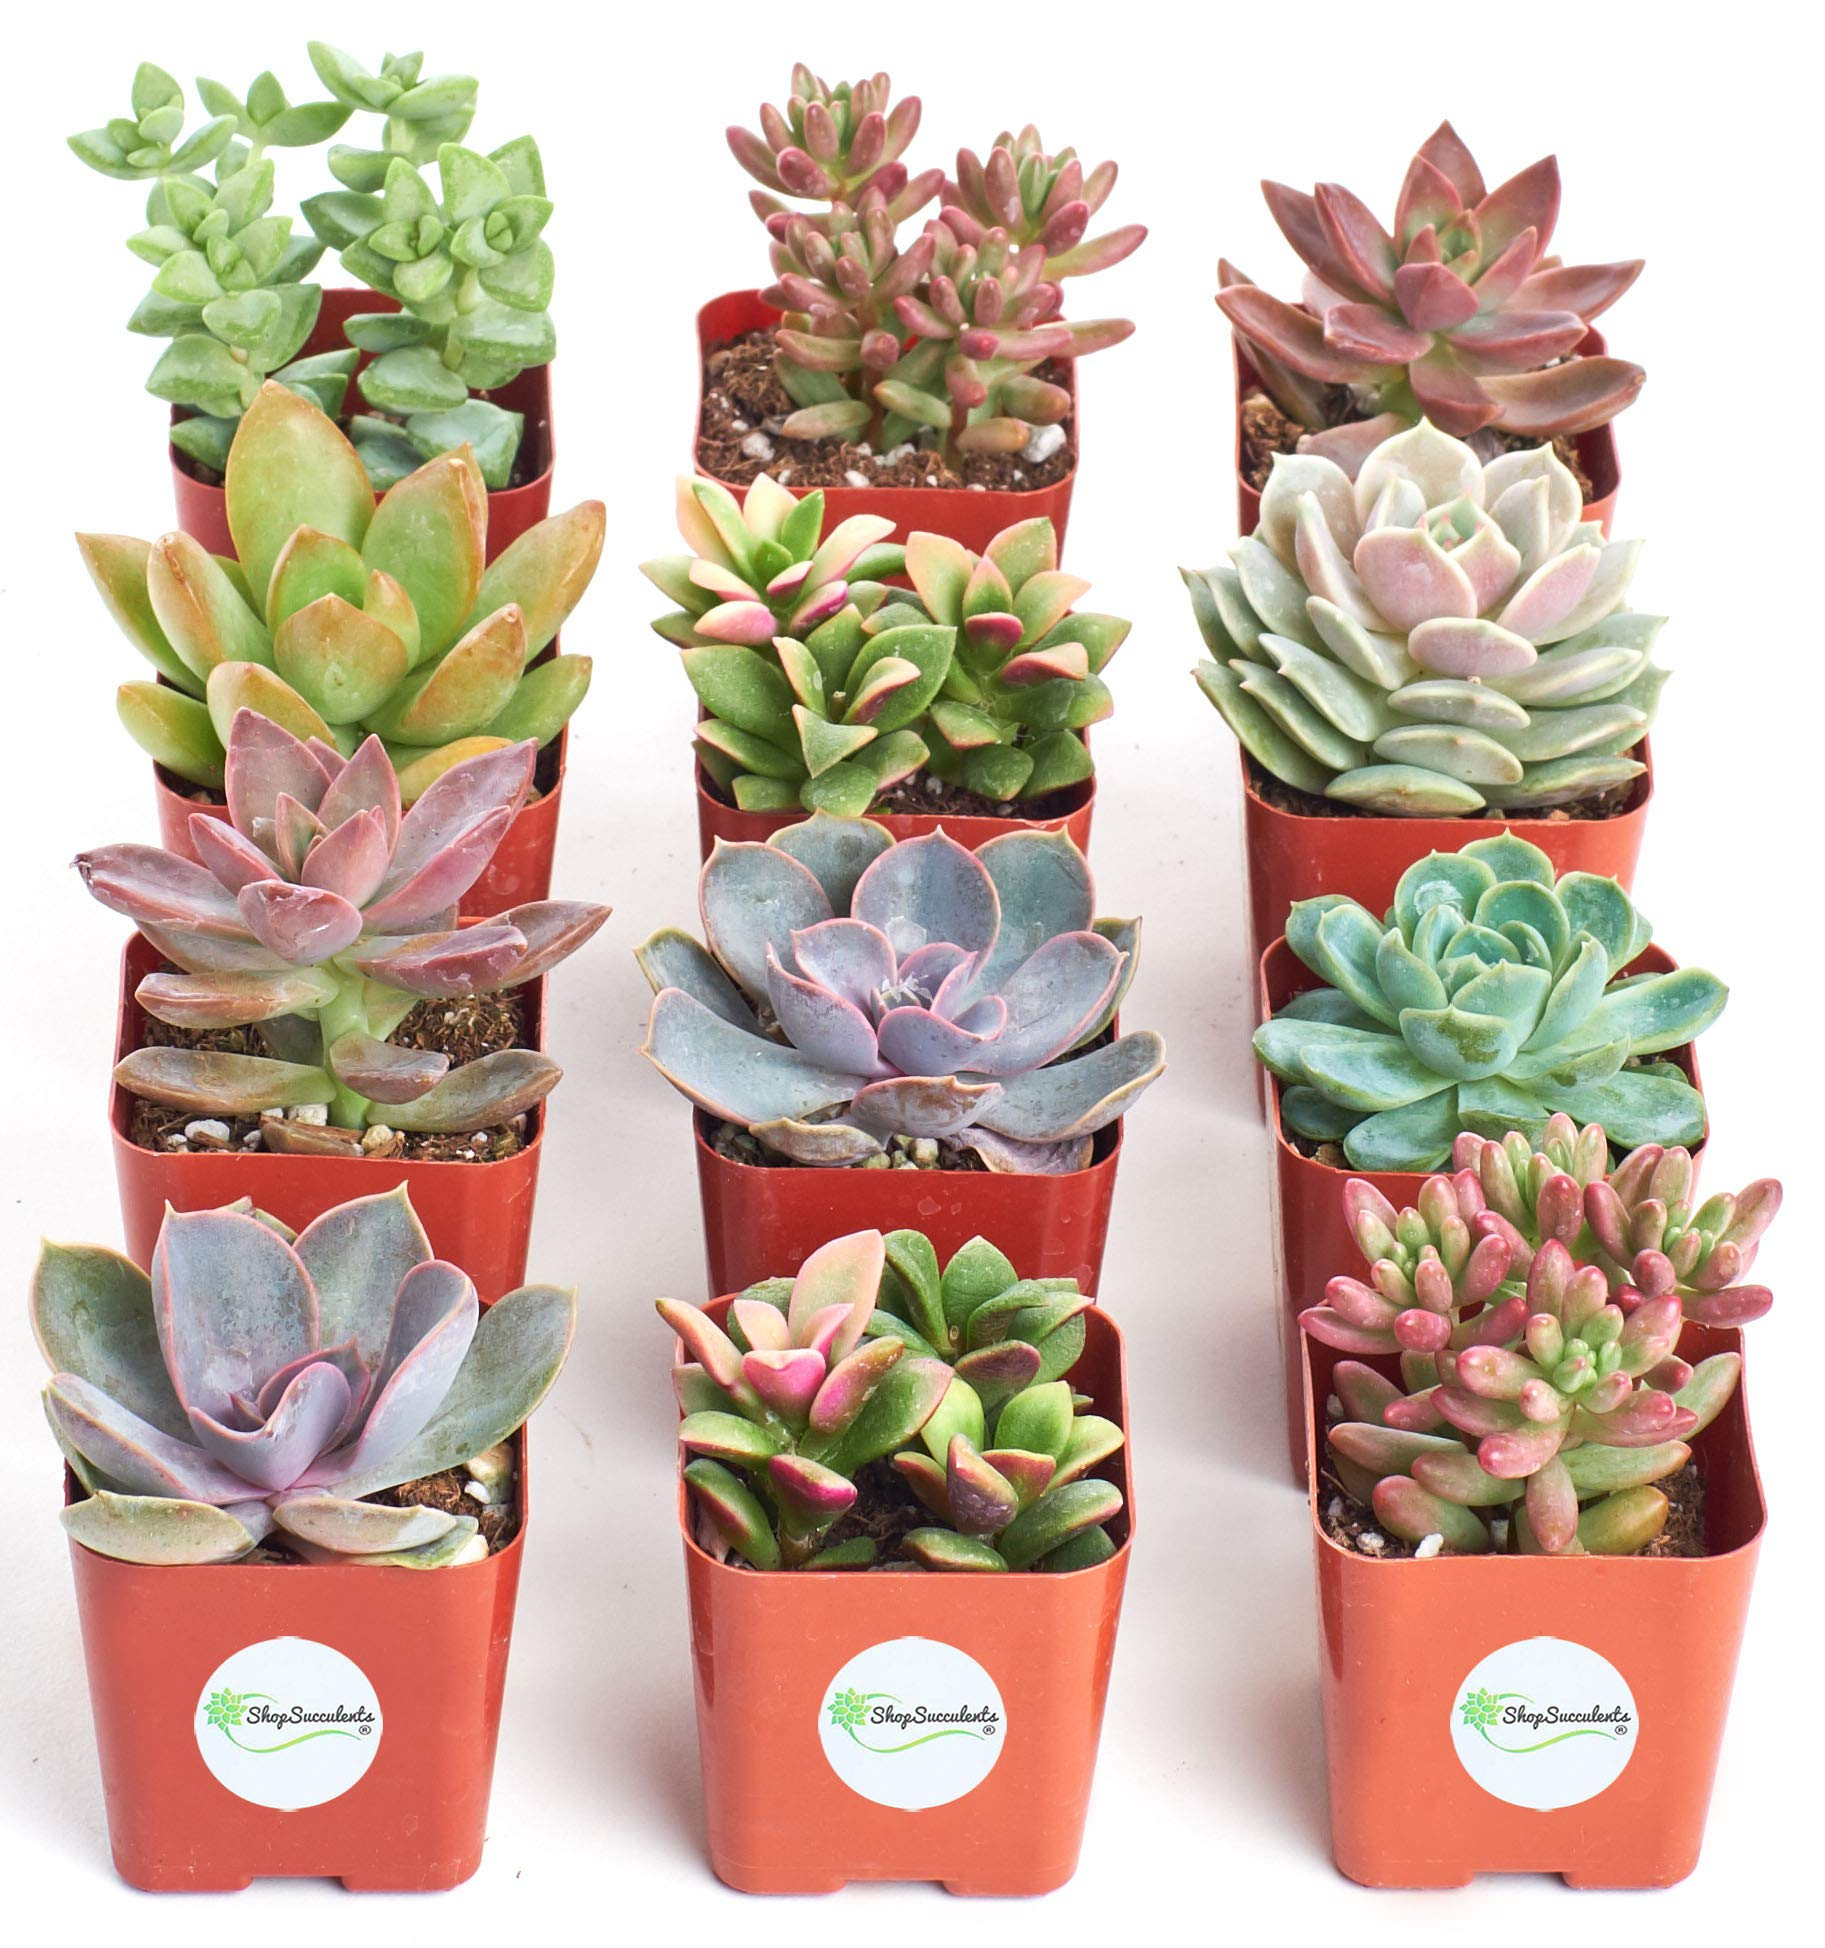 Shop Succulents  Premium Pastel Collection of LiveSucculent Plants, Hand Selected Variety Pack of Mini Succulents   Collection of 12 in 2'' pots by Shop Succulents (Image #3)